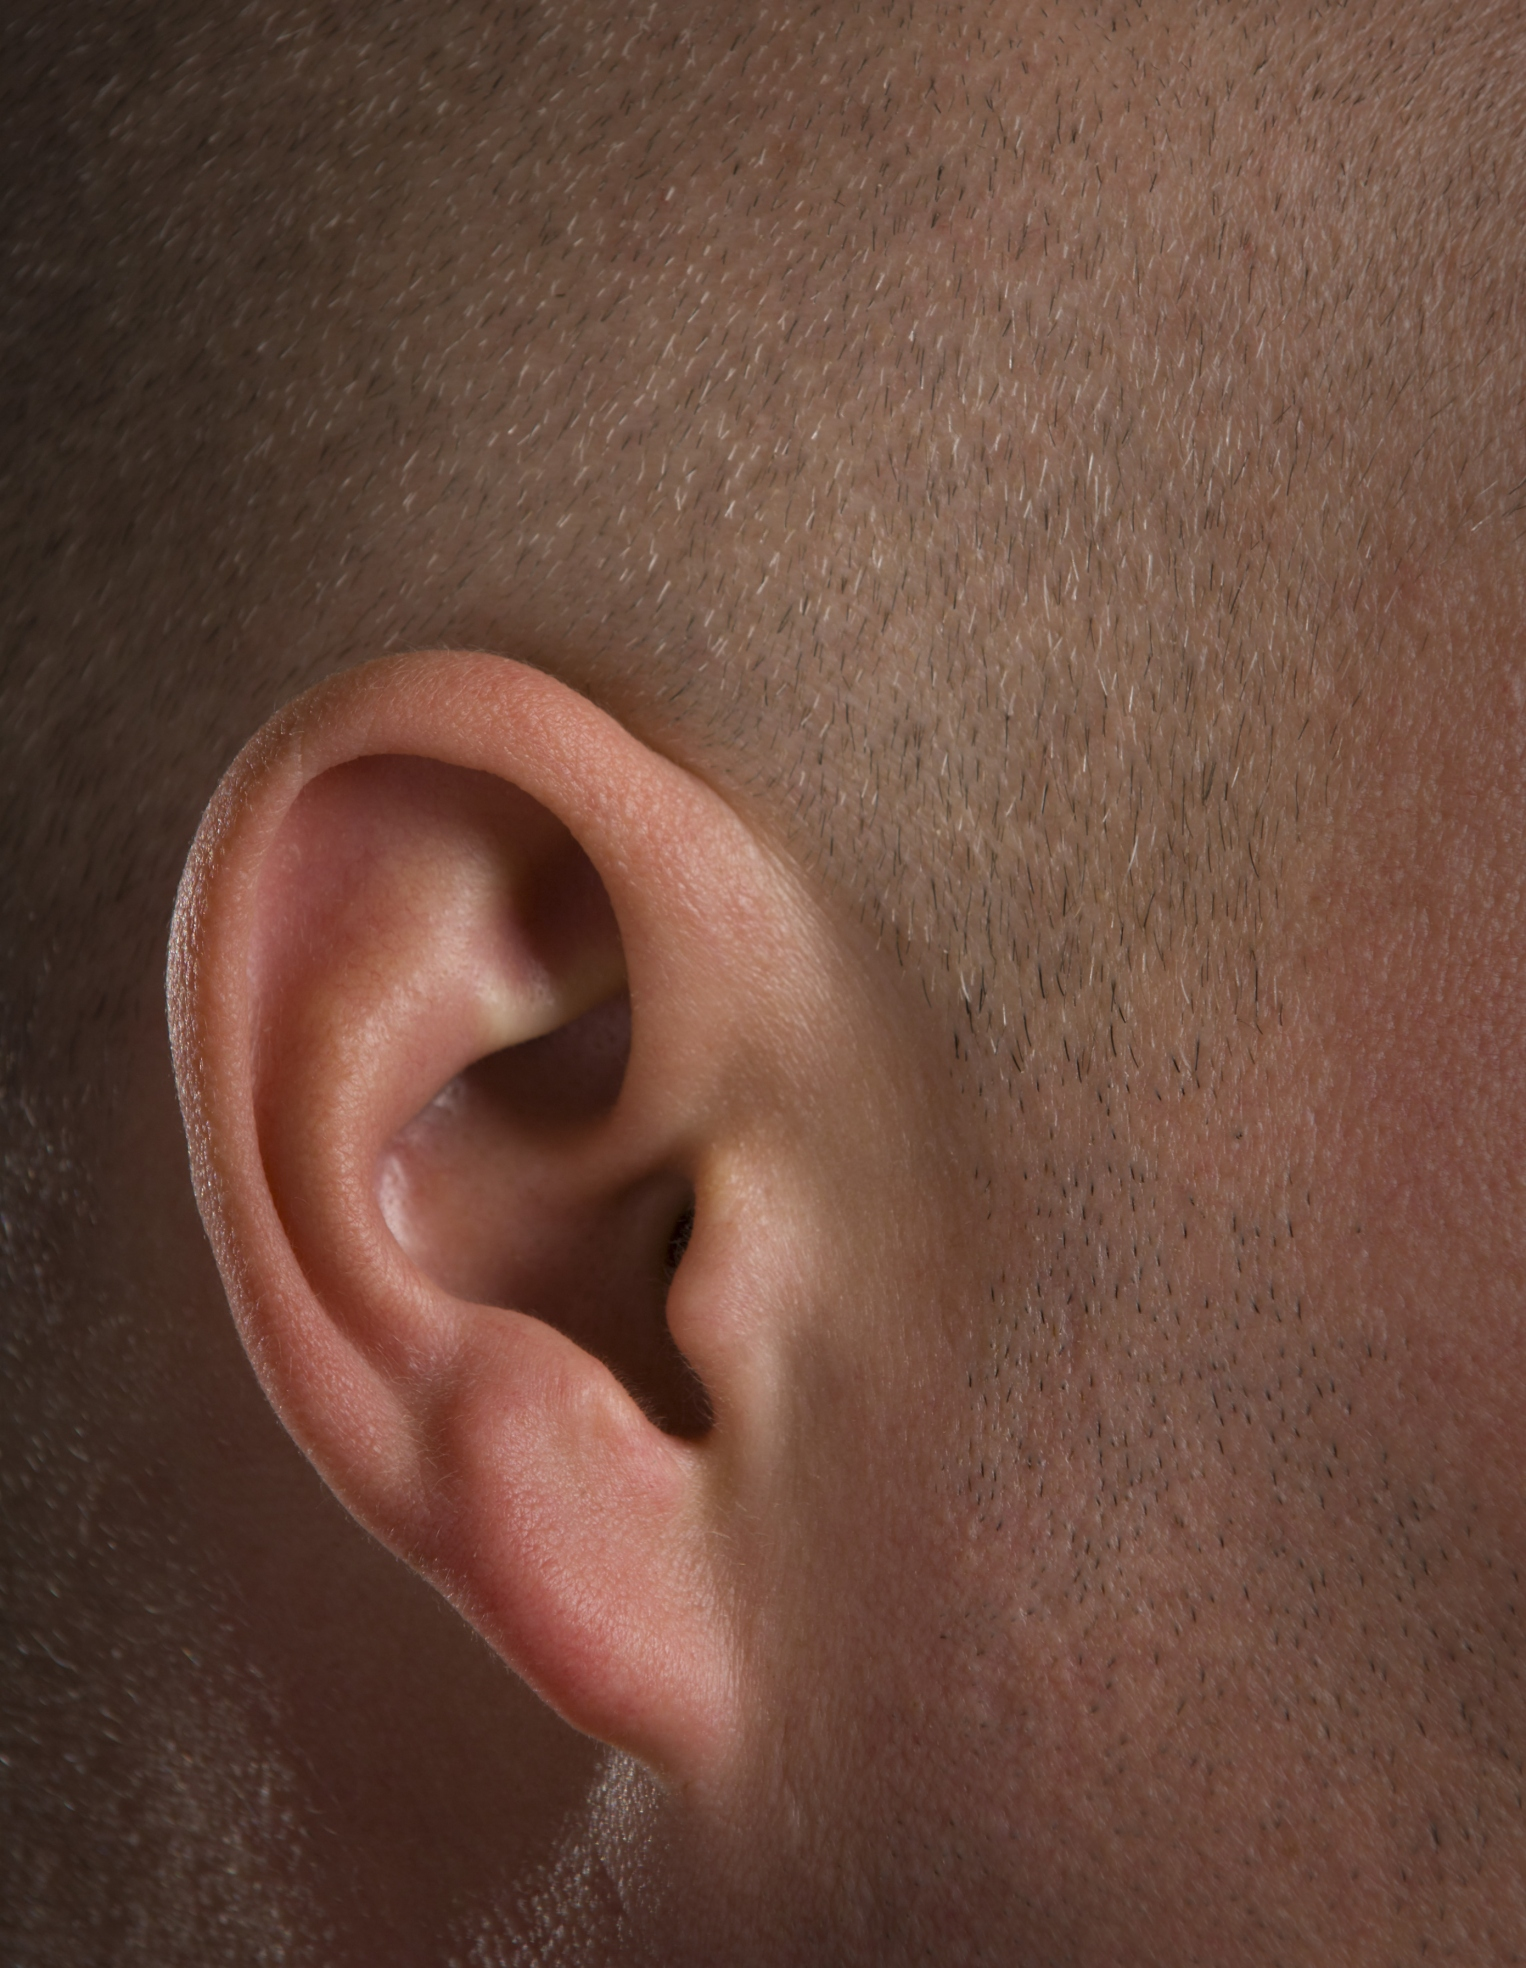 How Can I Remove the Cotton From a Q Tip Stuck in My Ear Canal?